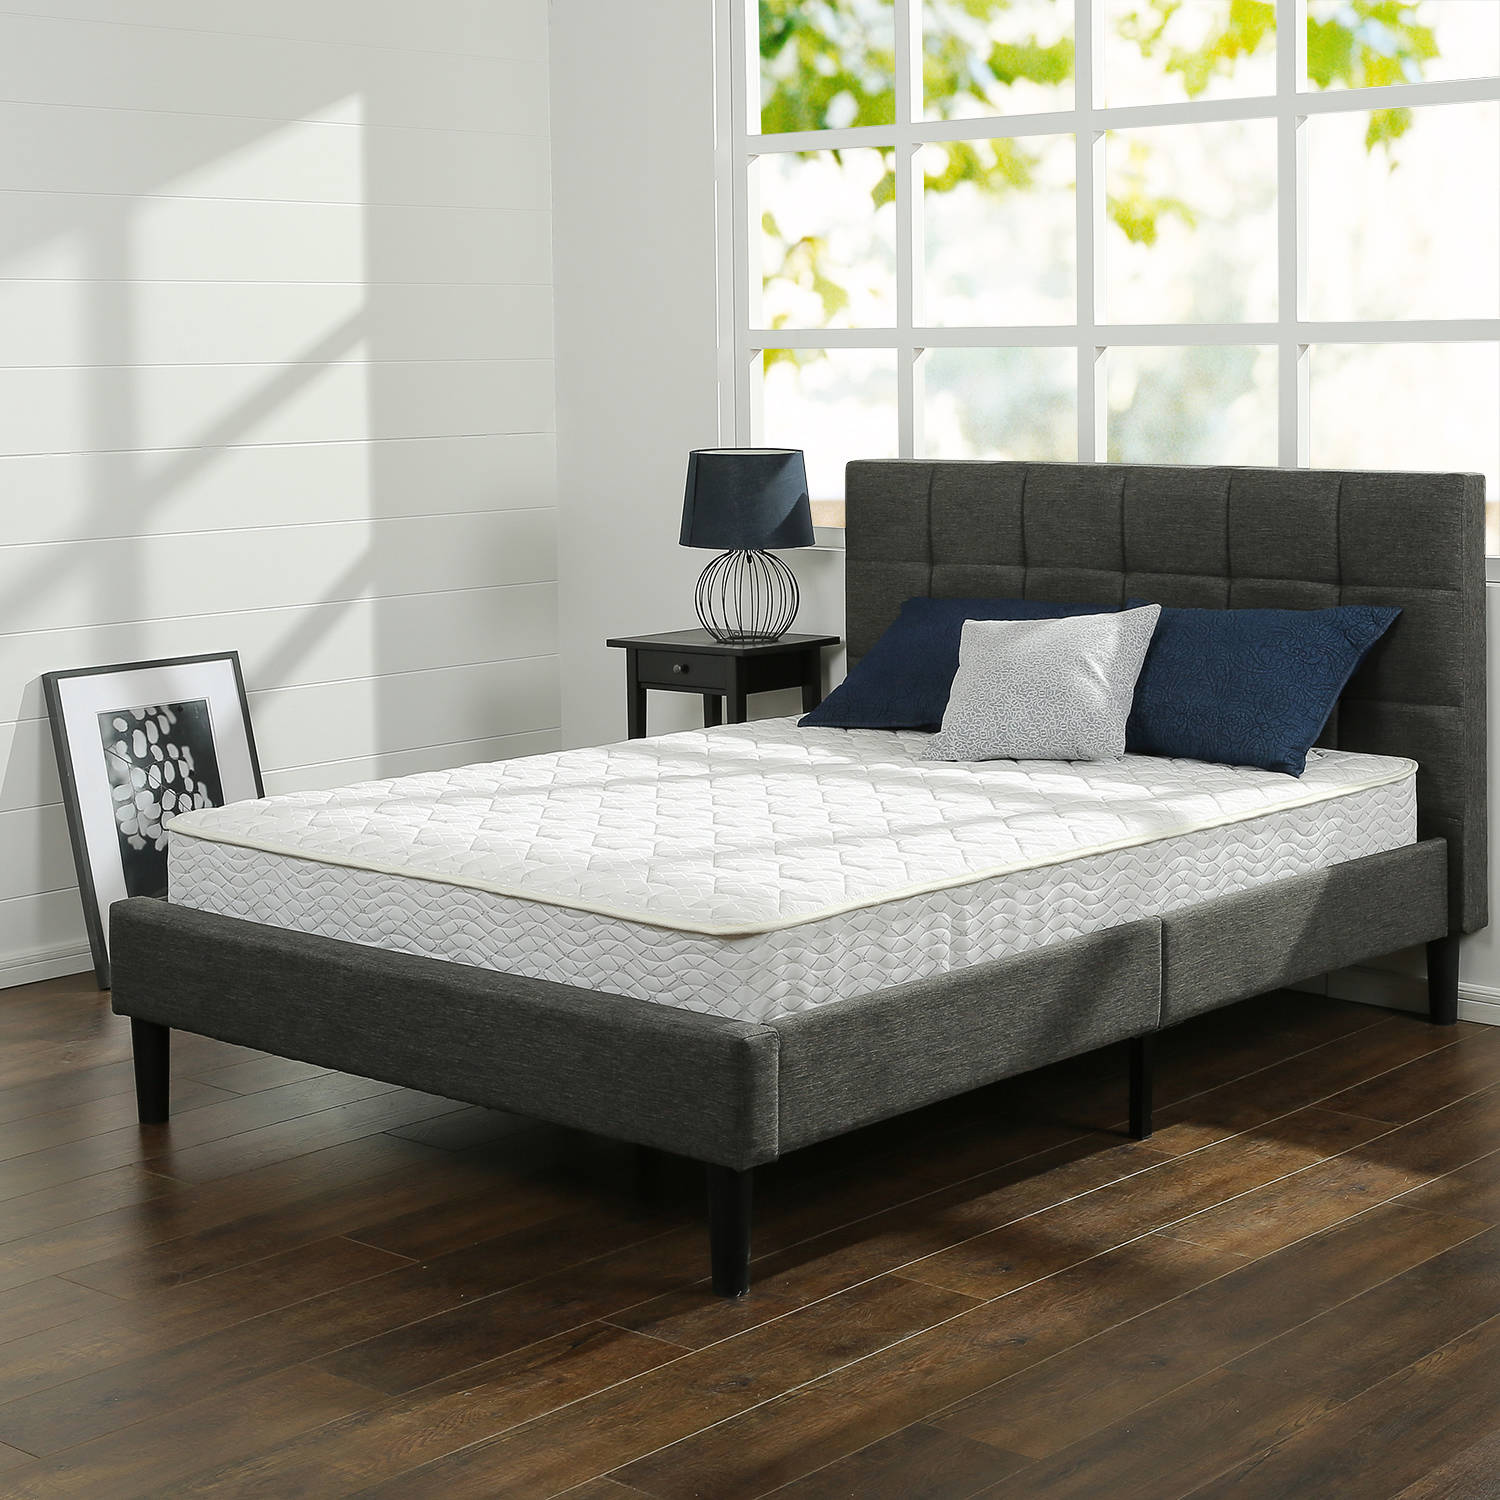 "Slumber 1 8"" Comfort Spring Mattress, Multiple Sizes"